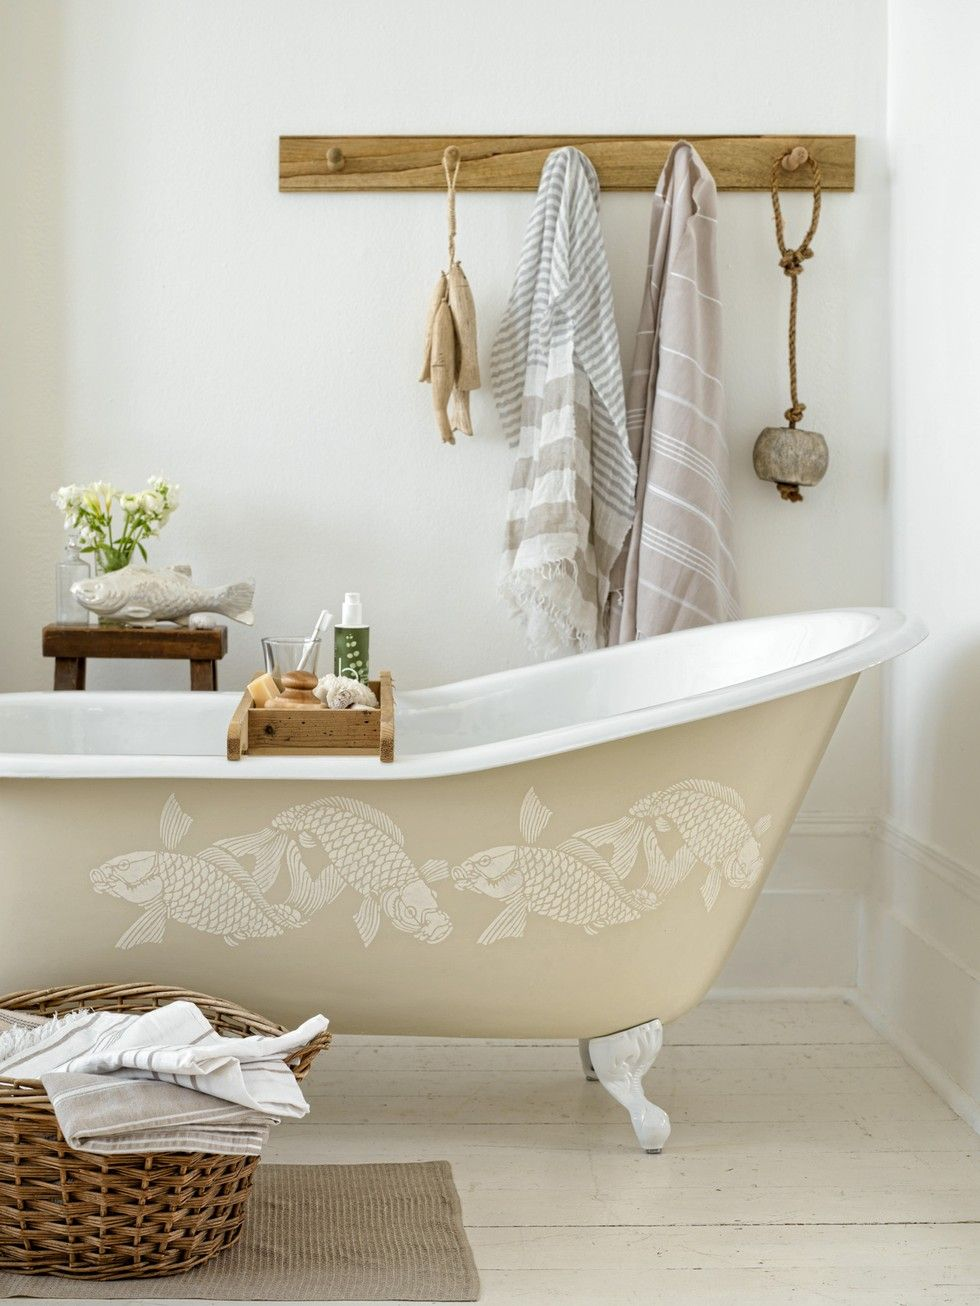 eyecandy: clawfoot tub DIY | Cottage White & Cream | Pinterest ...